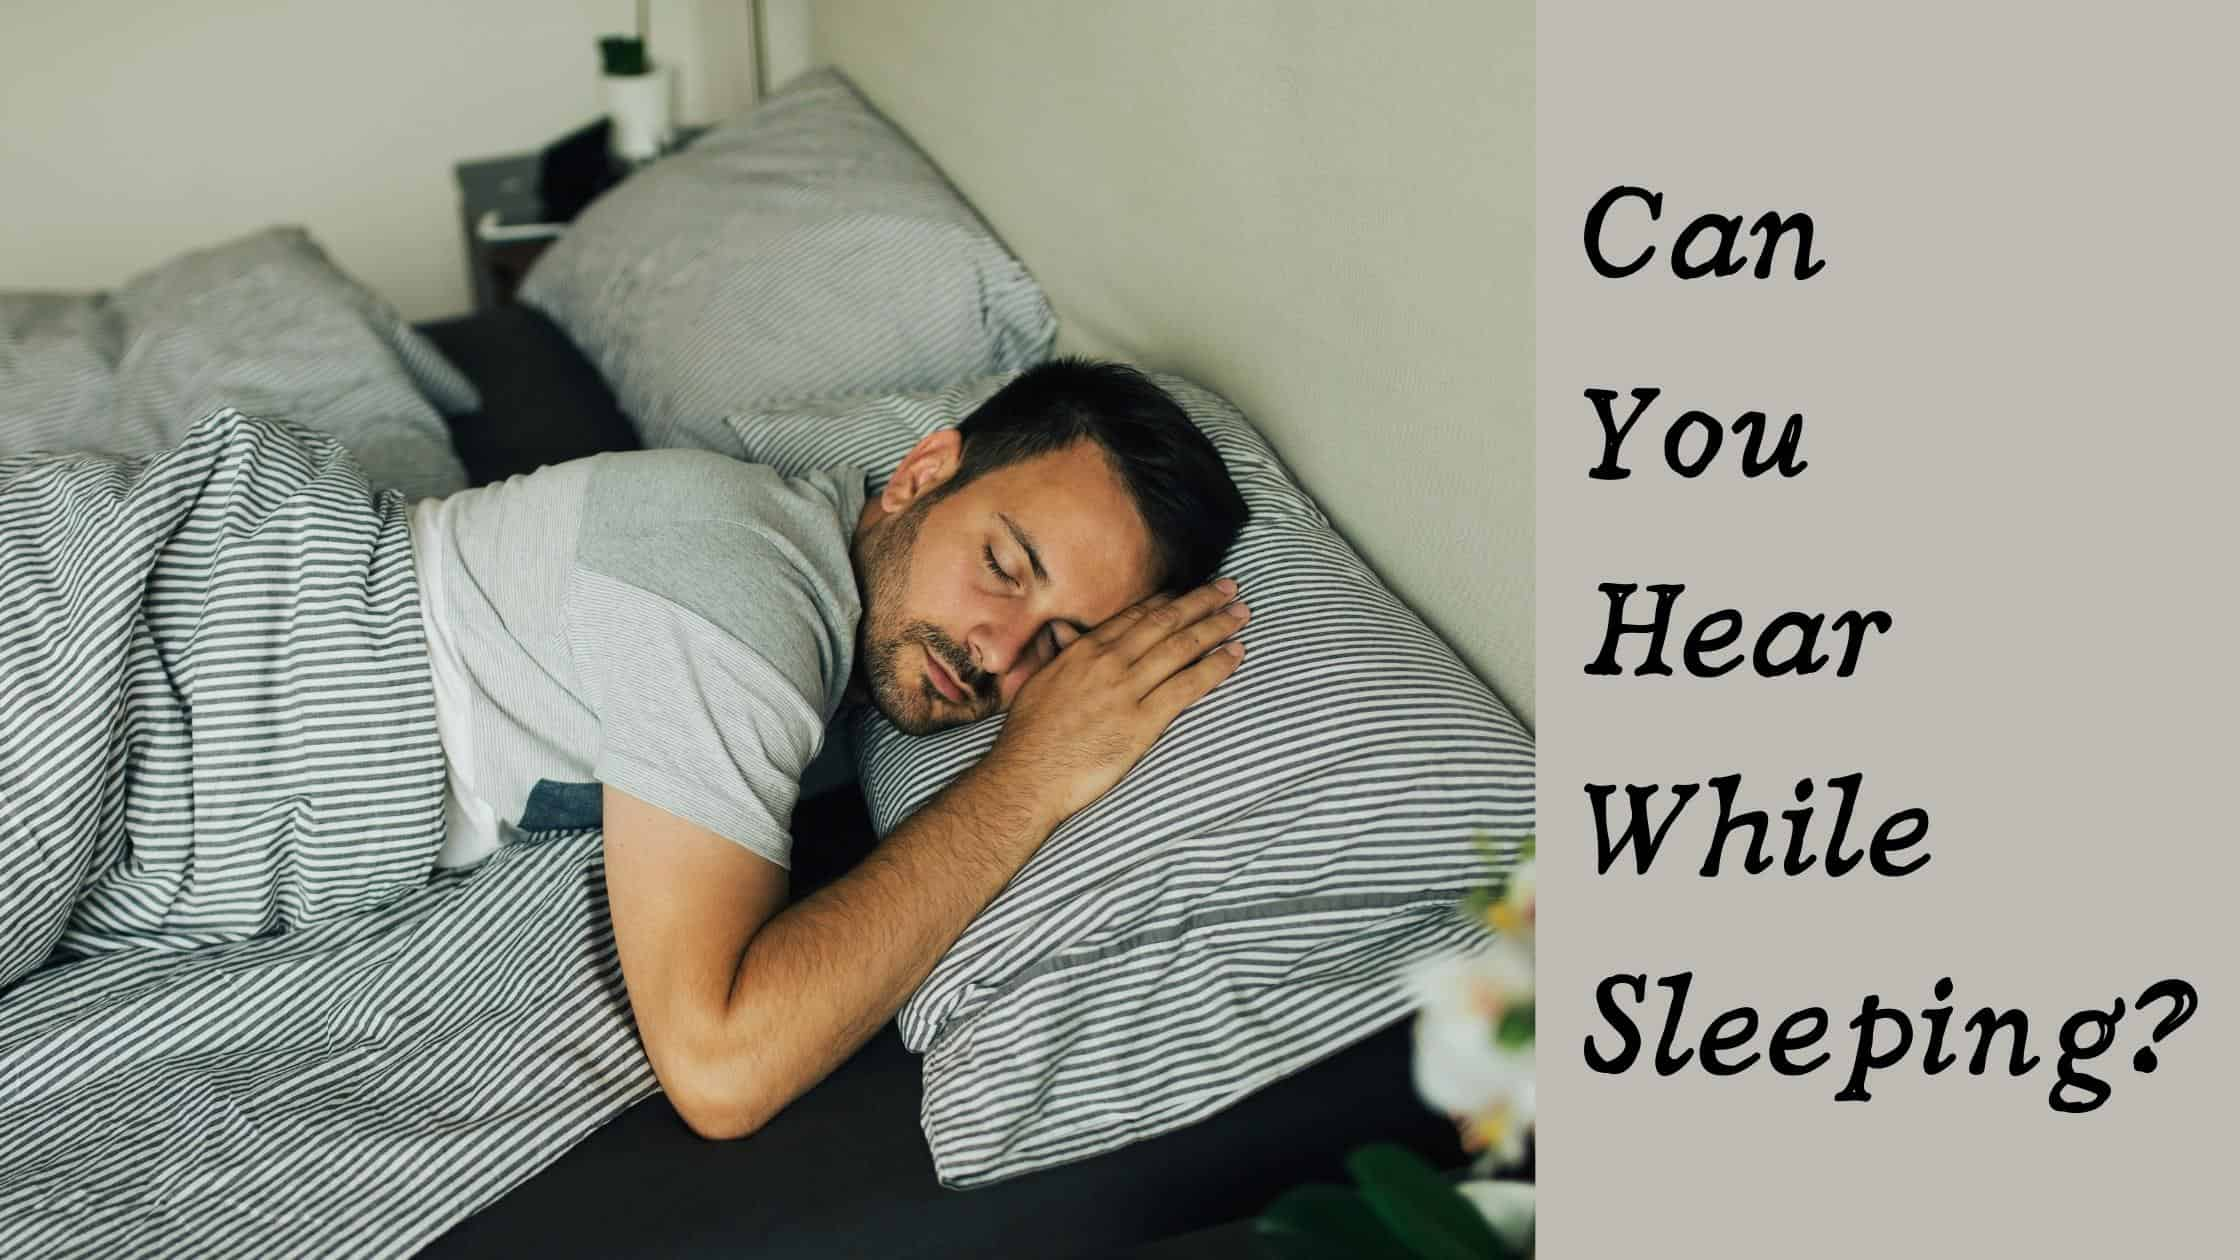 Can You Hear While Sleeping